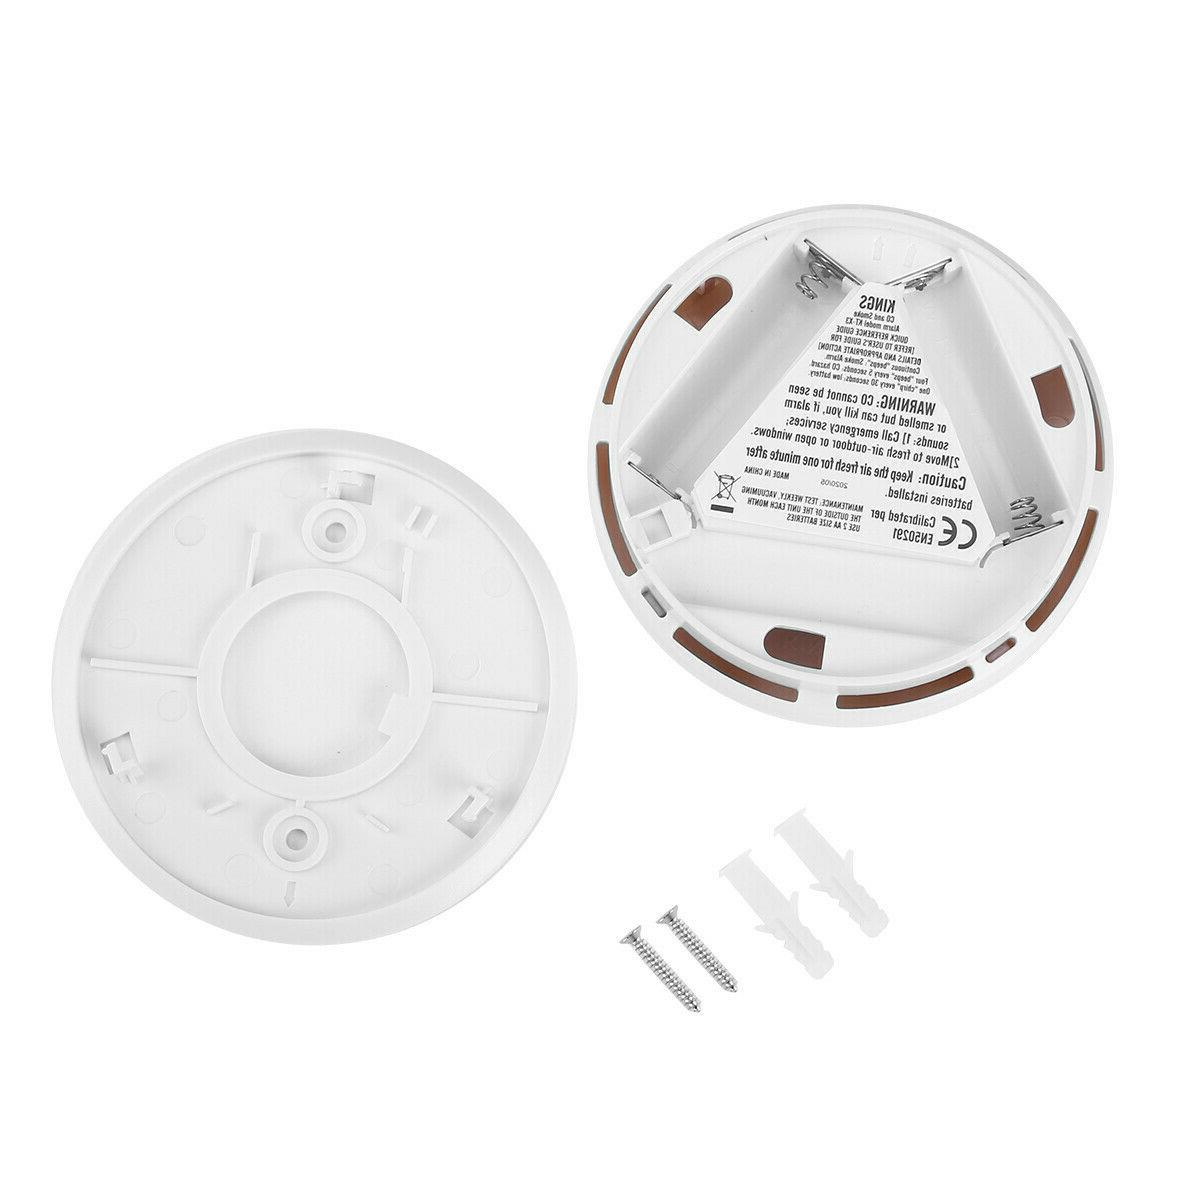 2-Pack Combination Smoke Carbon Monoxide Battery Operated